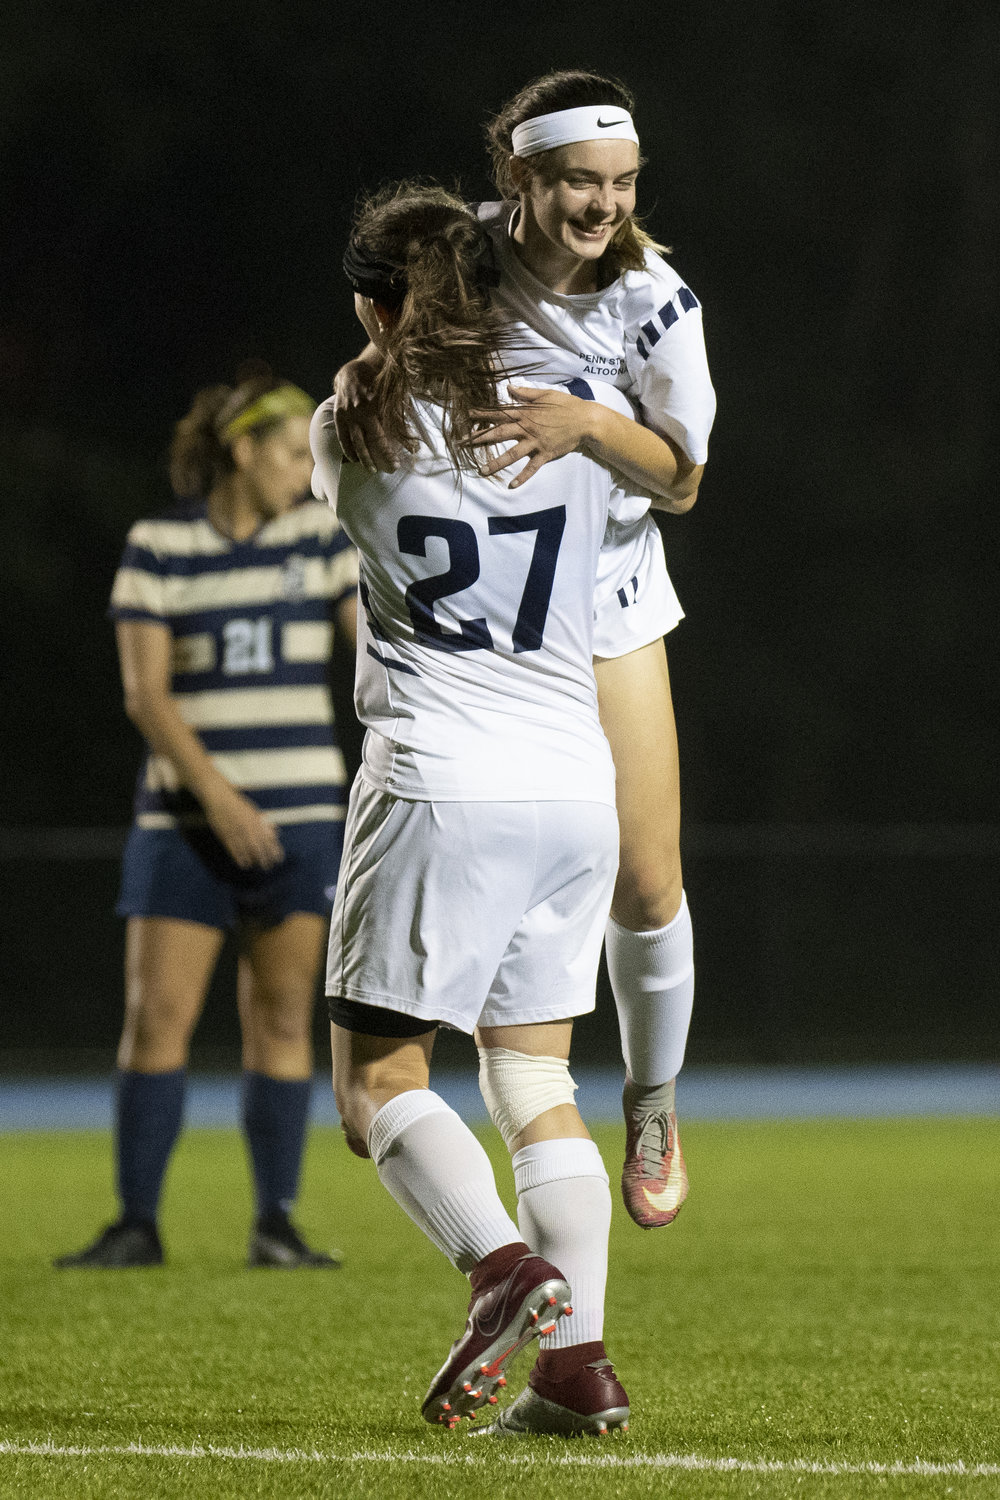 Penn State Altoona Women's Soccer player Sadie McConnell (#11) celebrates her goal with teammate Kierra Irwin (#27) in Altoona's 4-1 win against Juniata College on Wednesday, September 19th, 2018 at Spring Run Stadium. - Photo By: Noah Riffe